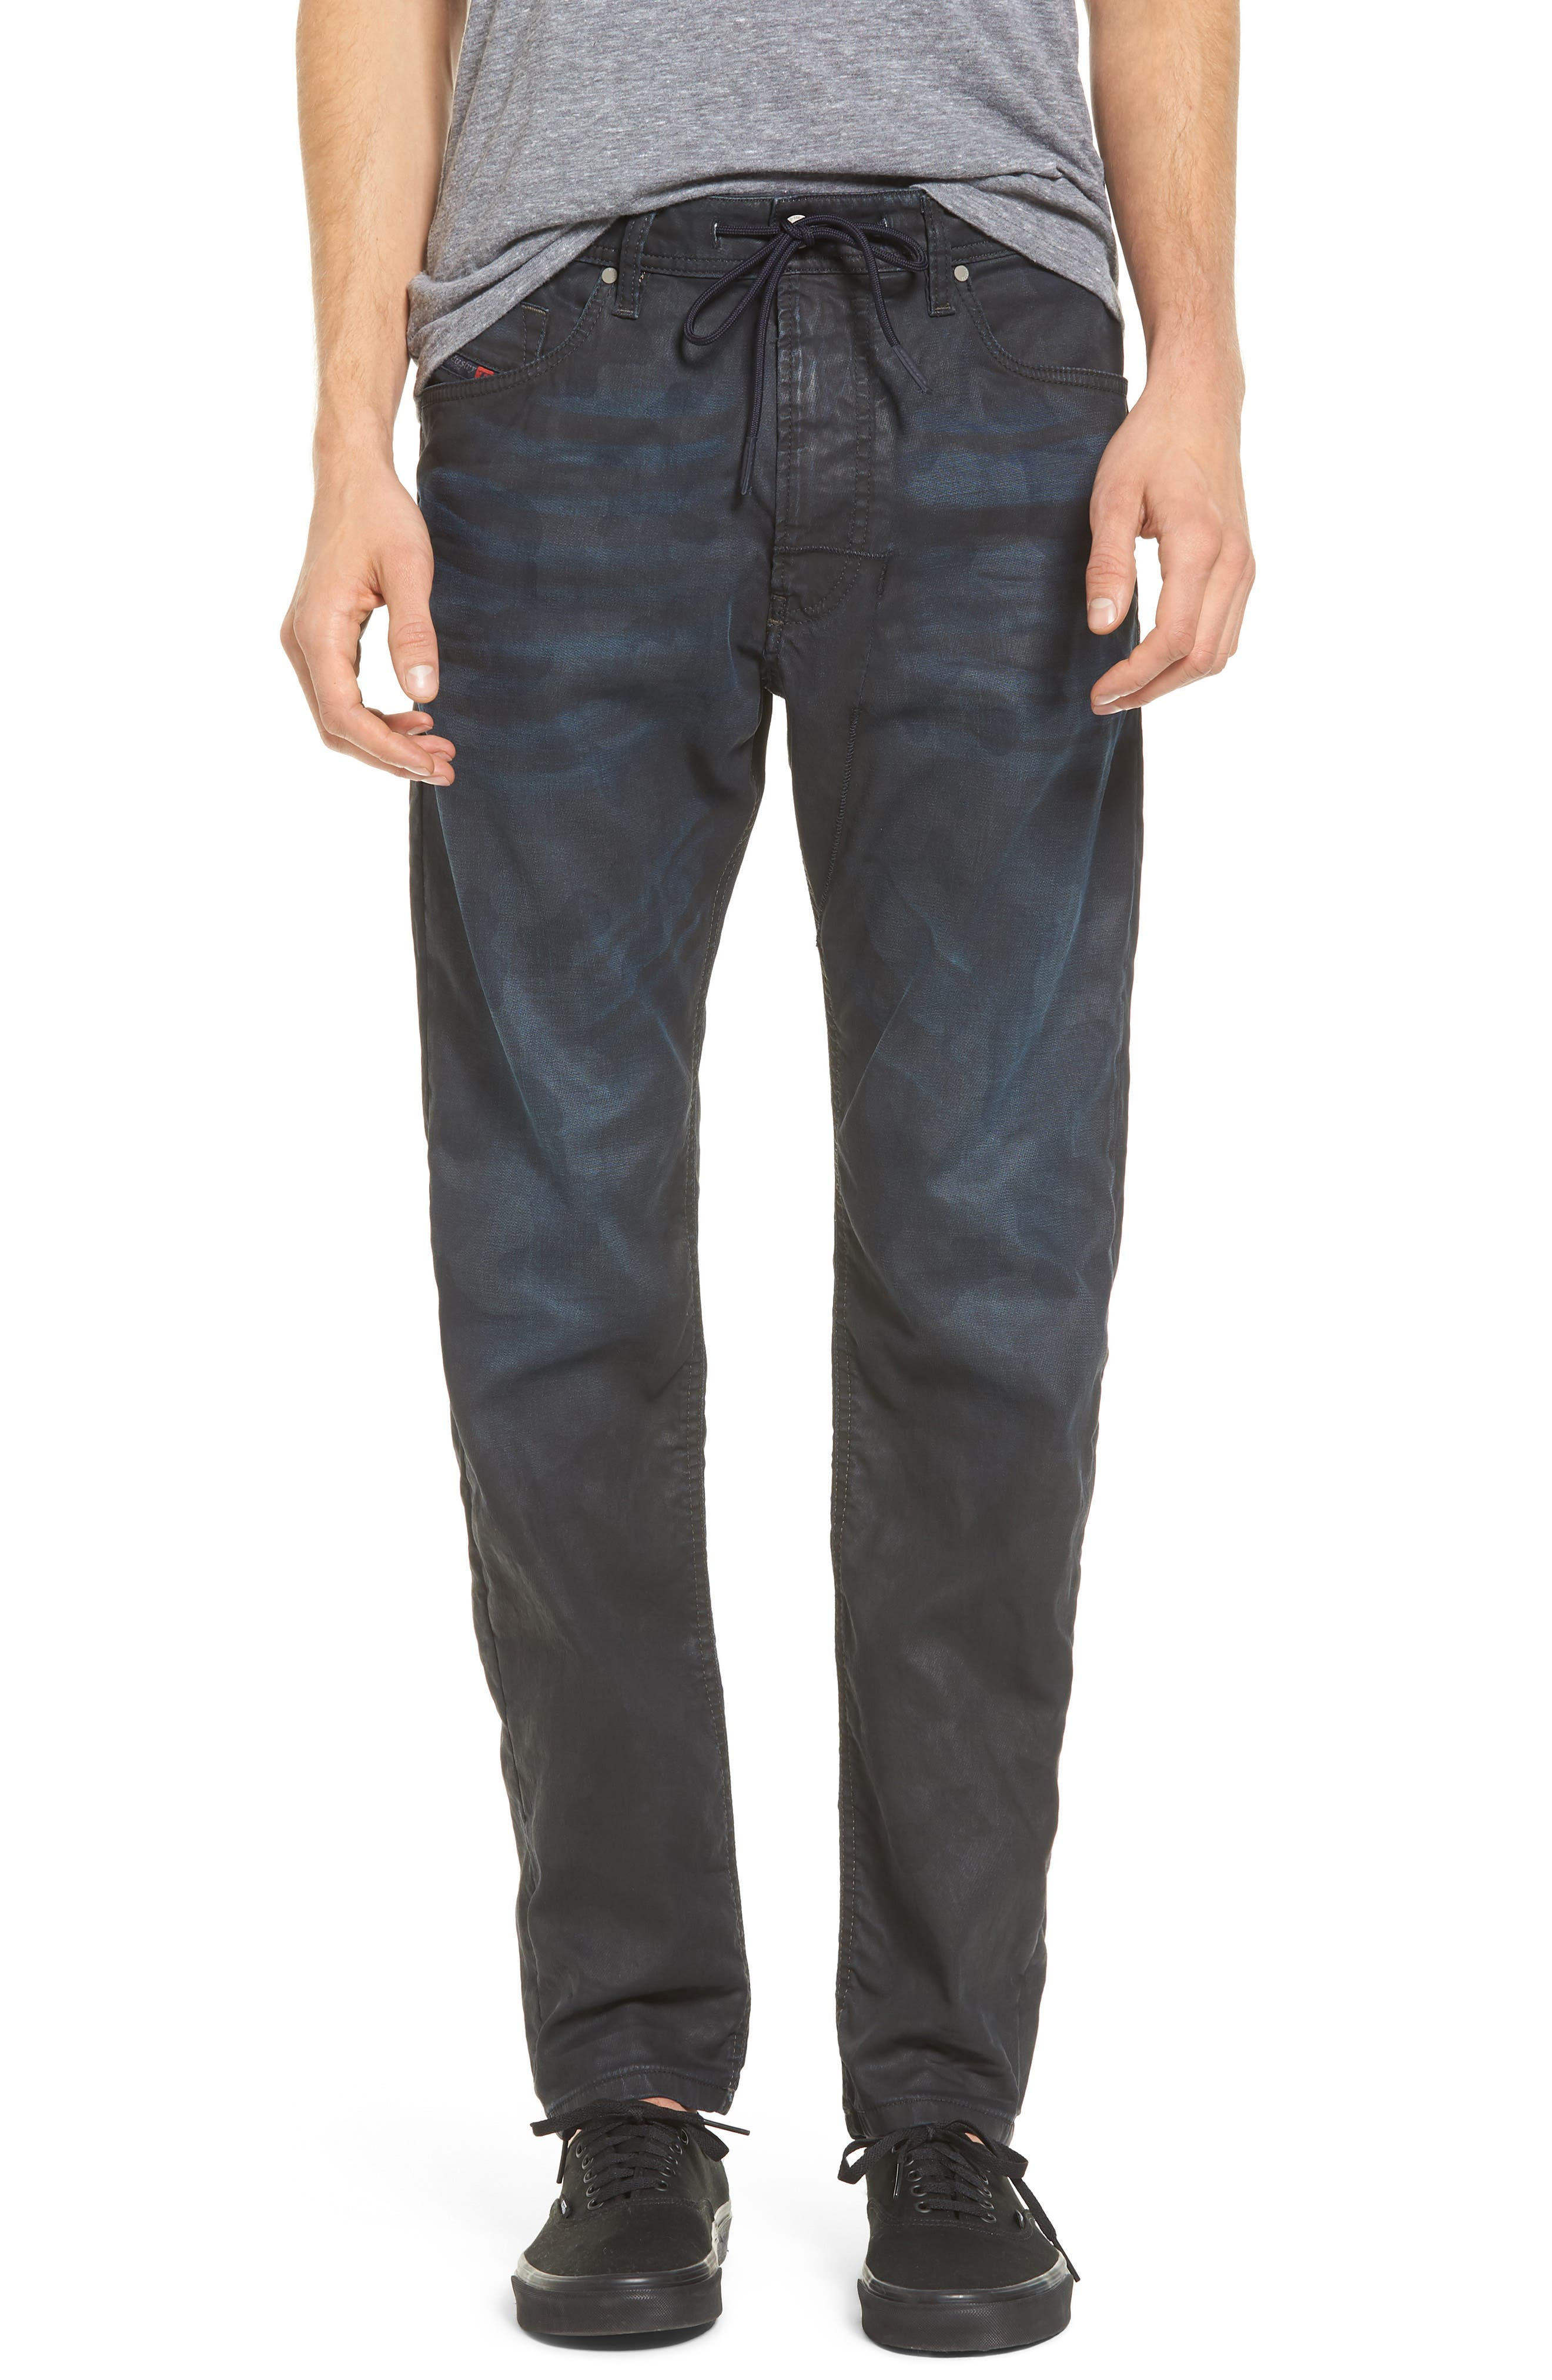 Narrot Slouchy Skinny Fit Jeans,                         Main,                         color,